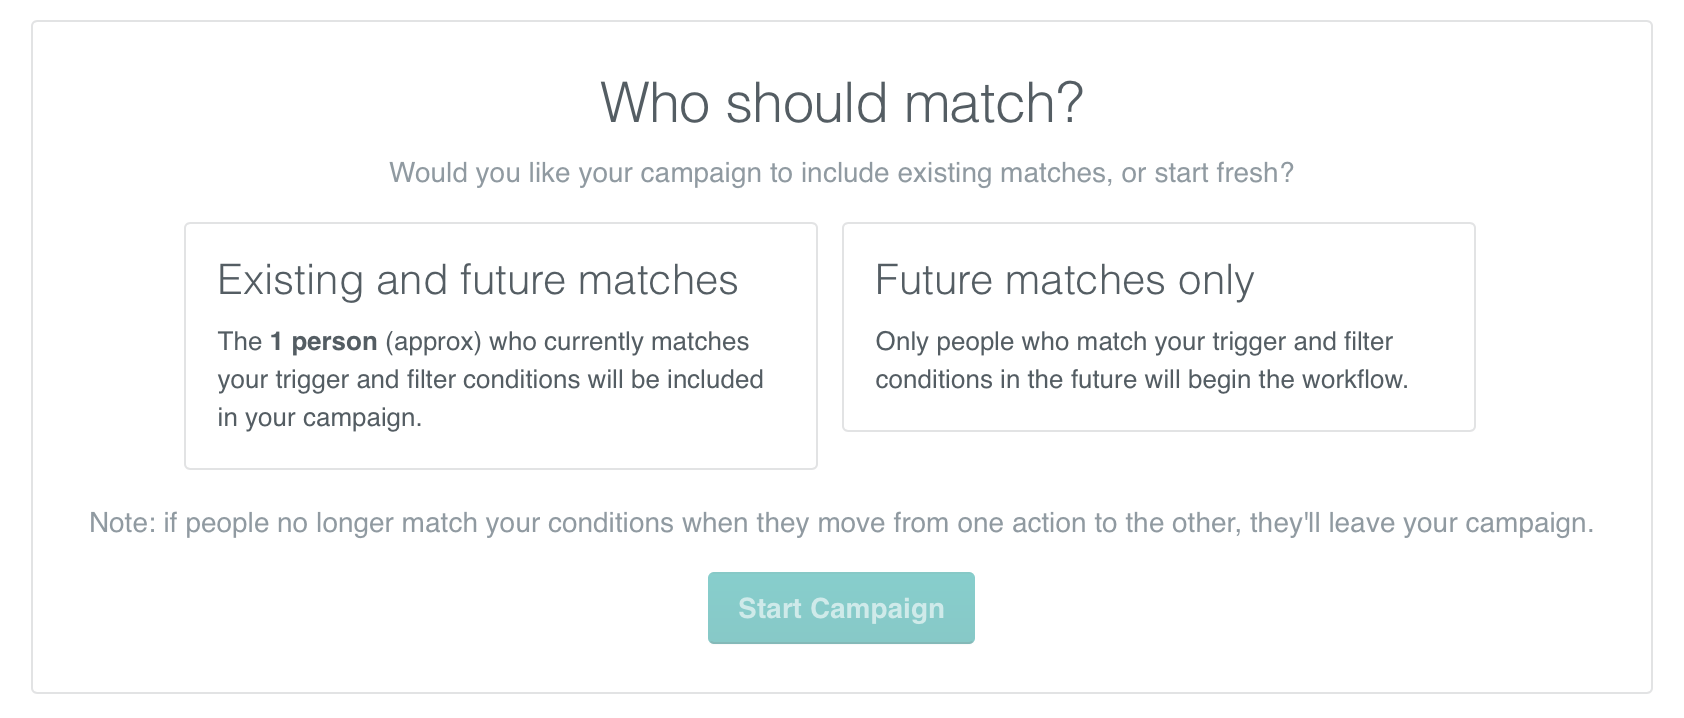 Include existing and future matches